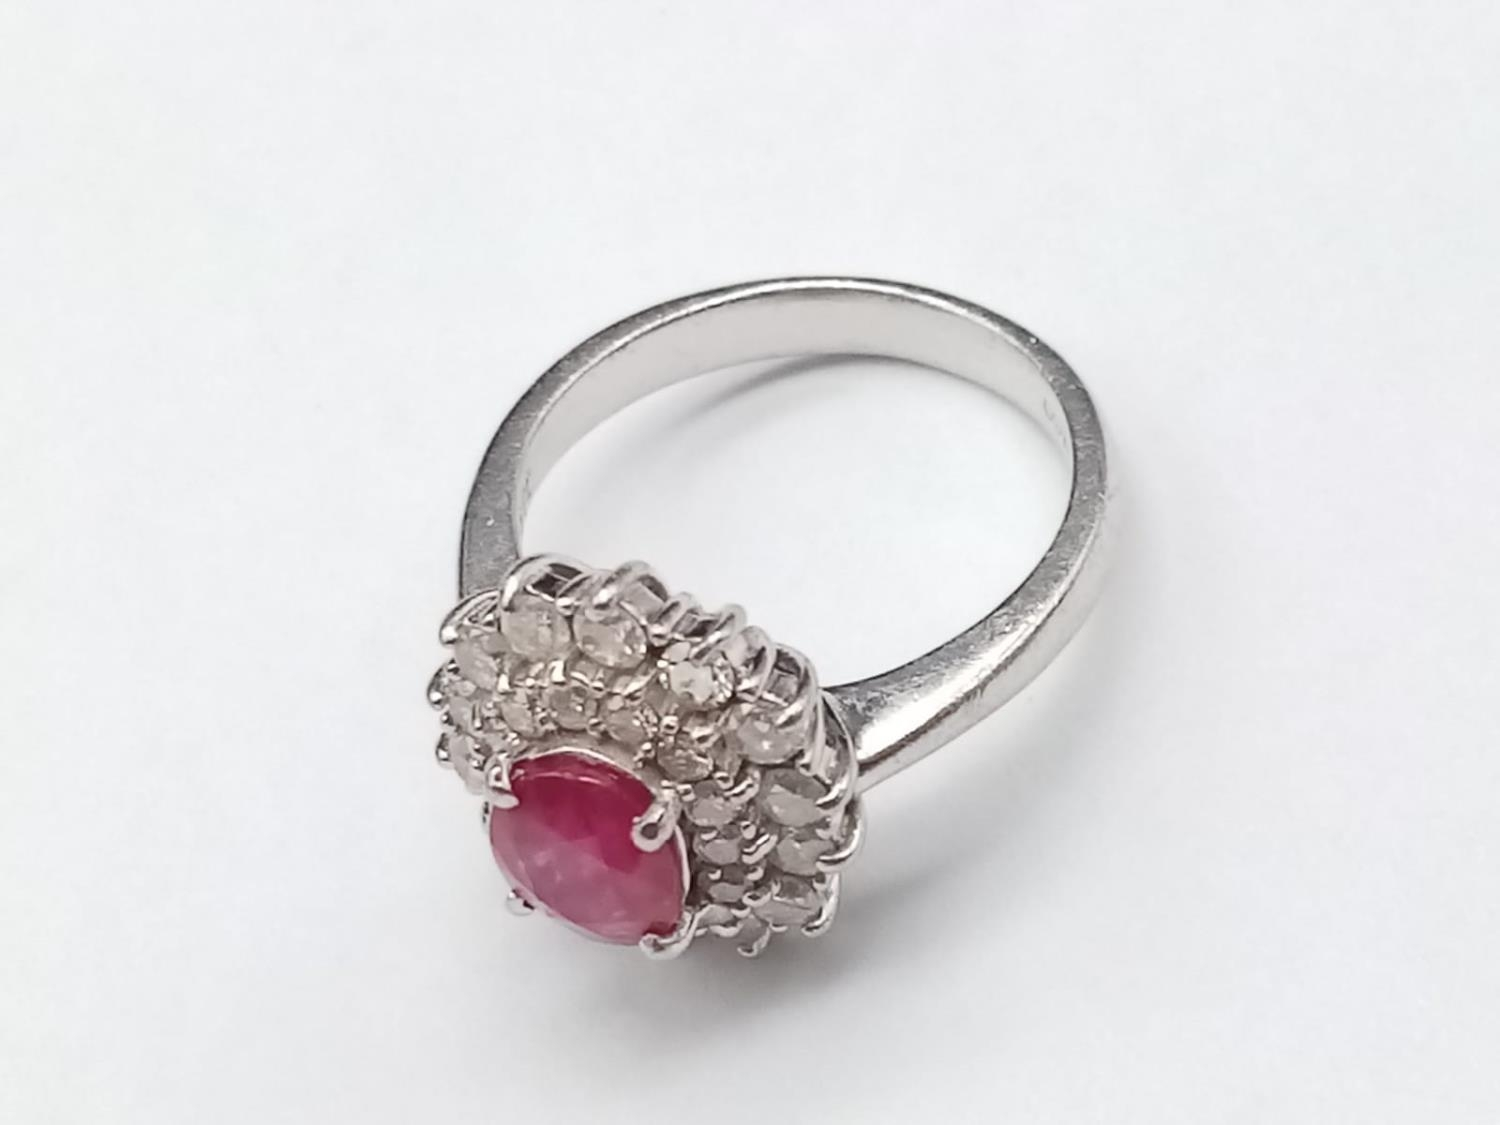 A PLATINUM RING WITH PINK RUBY CENTRE STONE WITH DIAMOND SURROUND. 6.5gms size K/L - Image 2 of 7